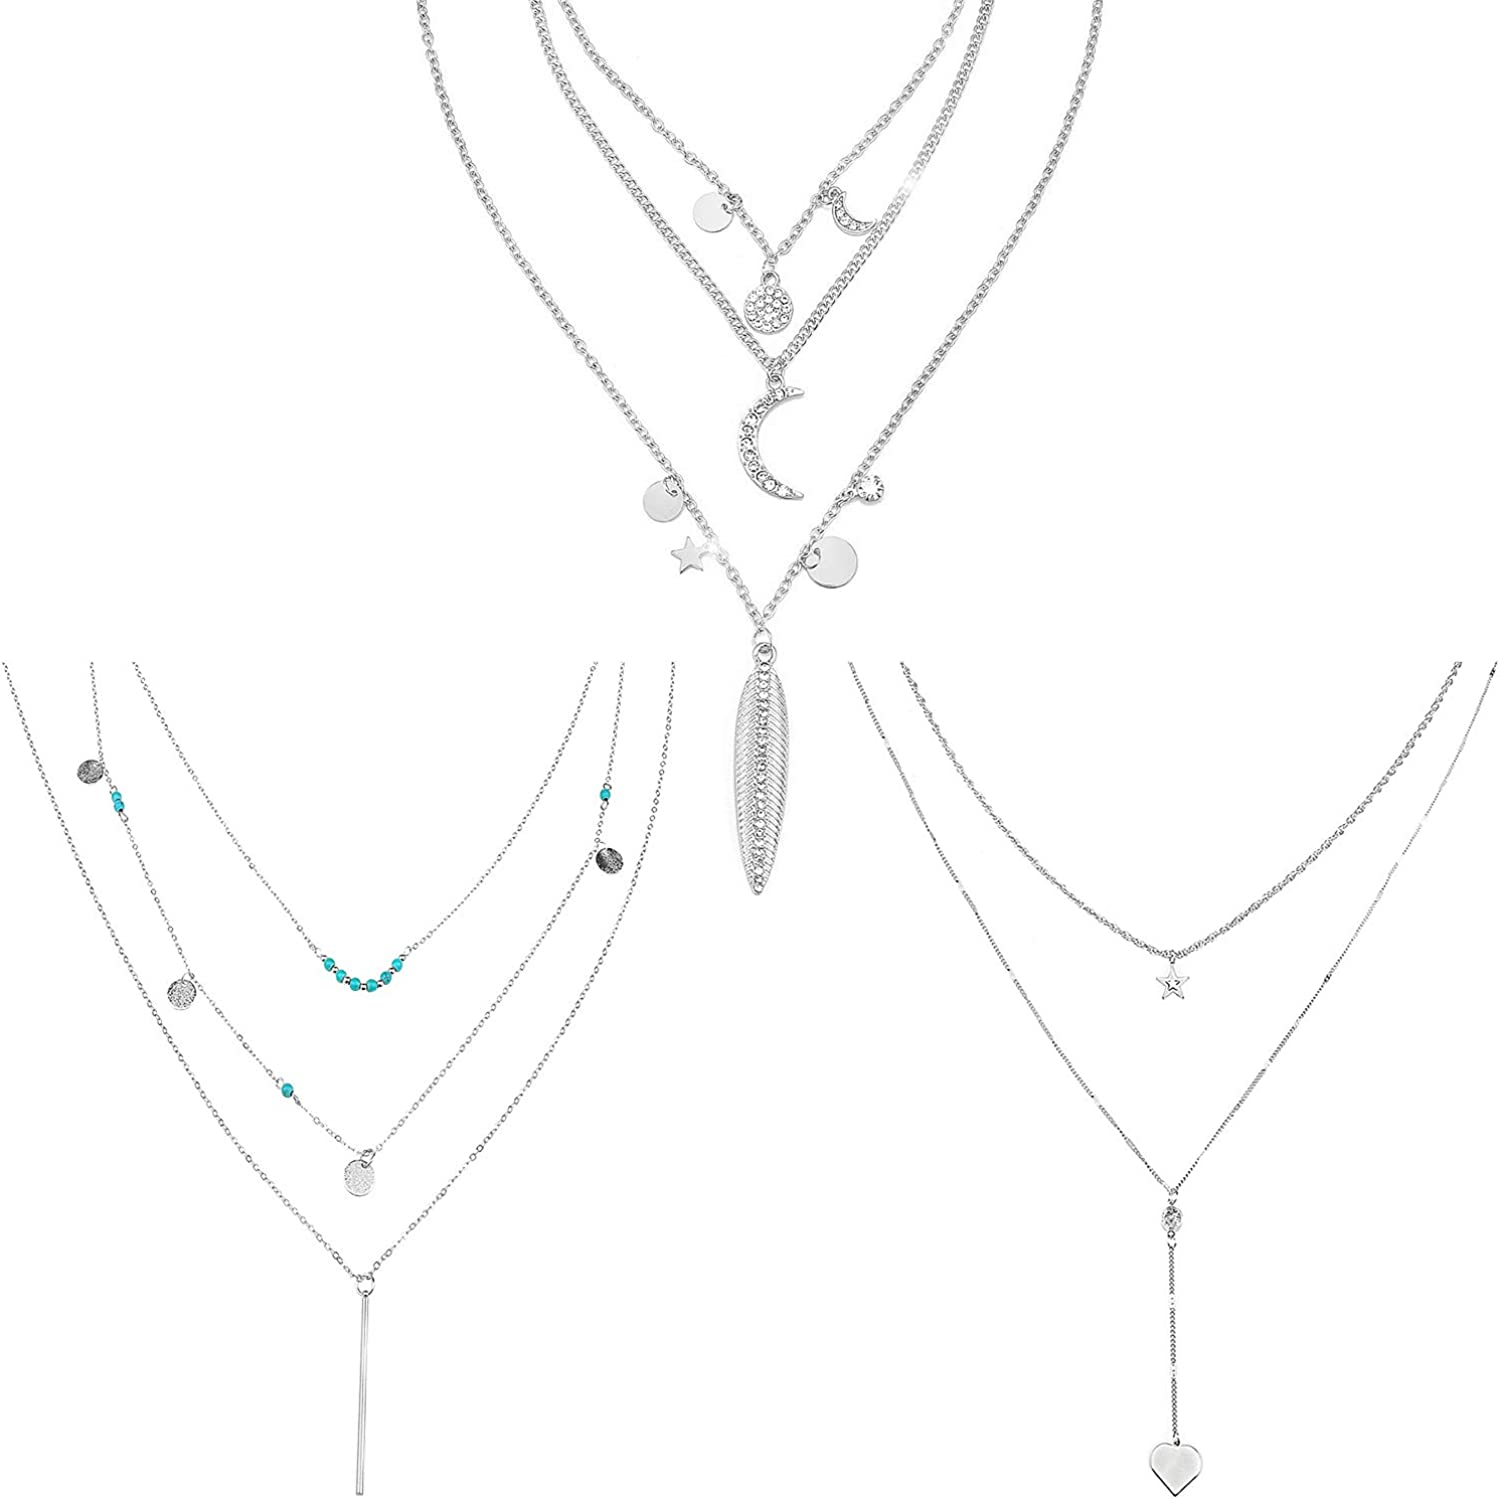 Wovanoo 3 Pieces Multilayer Necklace Set Laying Turquoise Sequin Moon Necklace Boho Y Pendant Chain for Women Gift